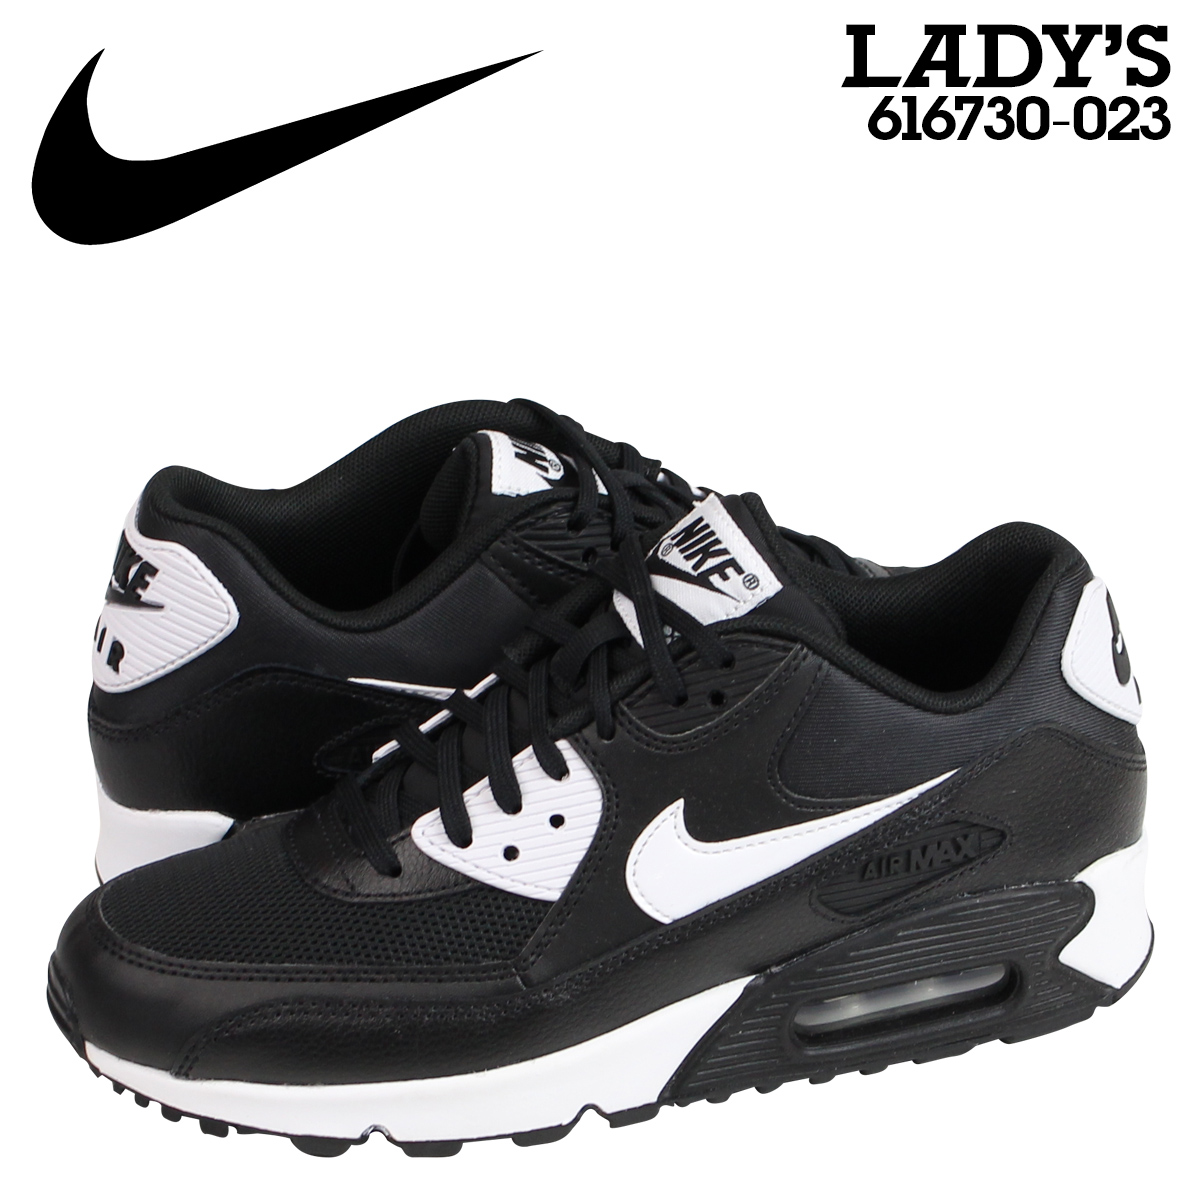 fb2cc1871a8e Nike NIKE Air Max 90 essential Lady s sneakers WMNS AIR MAX 90 ESSENTIAL  616